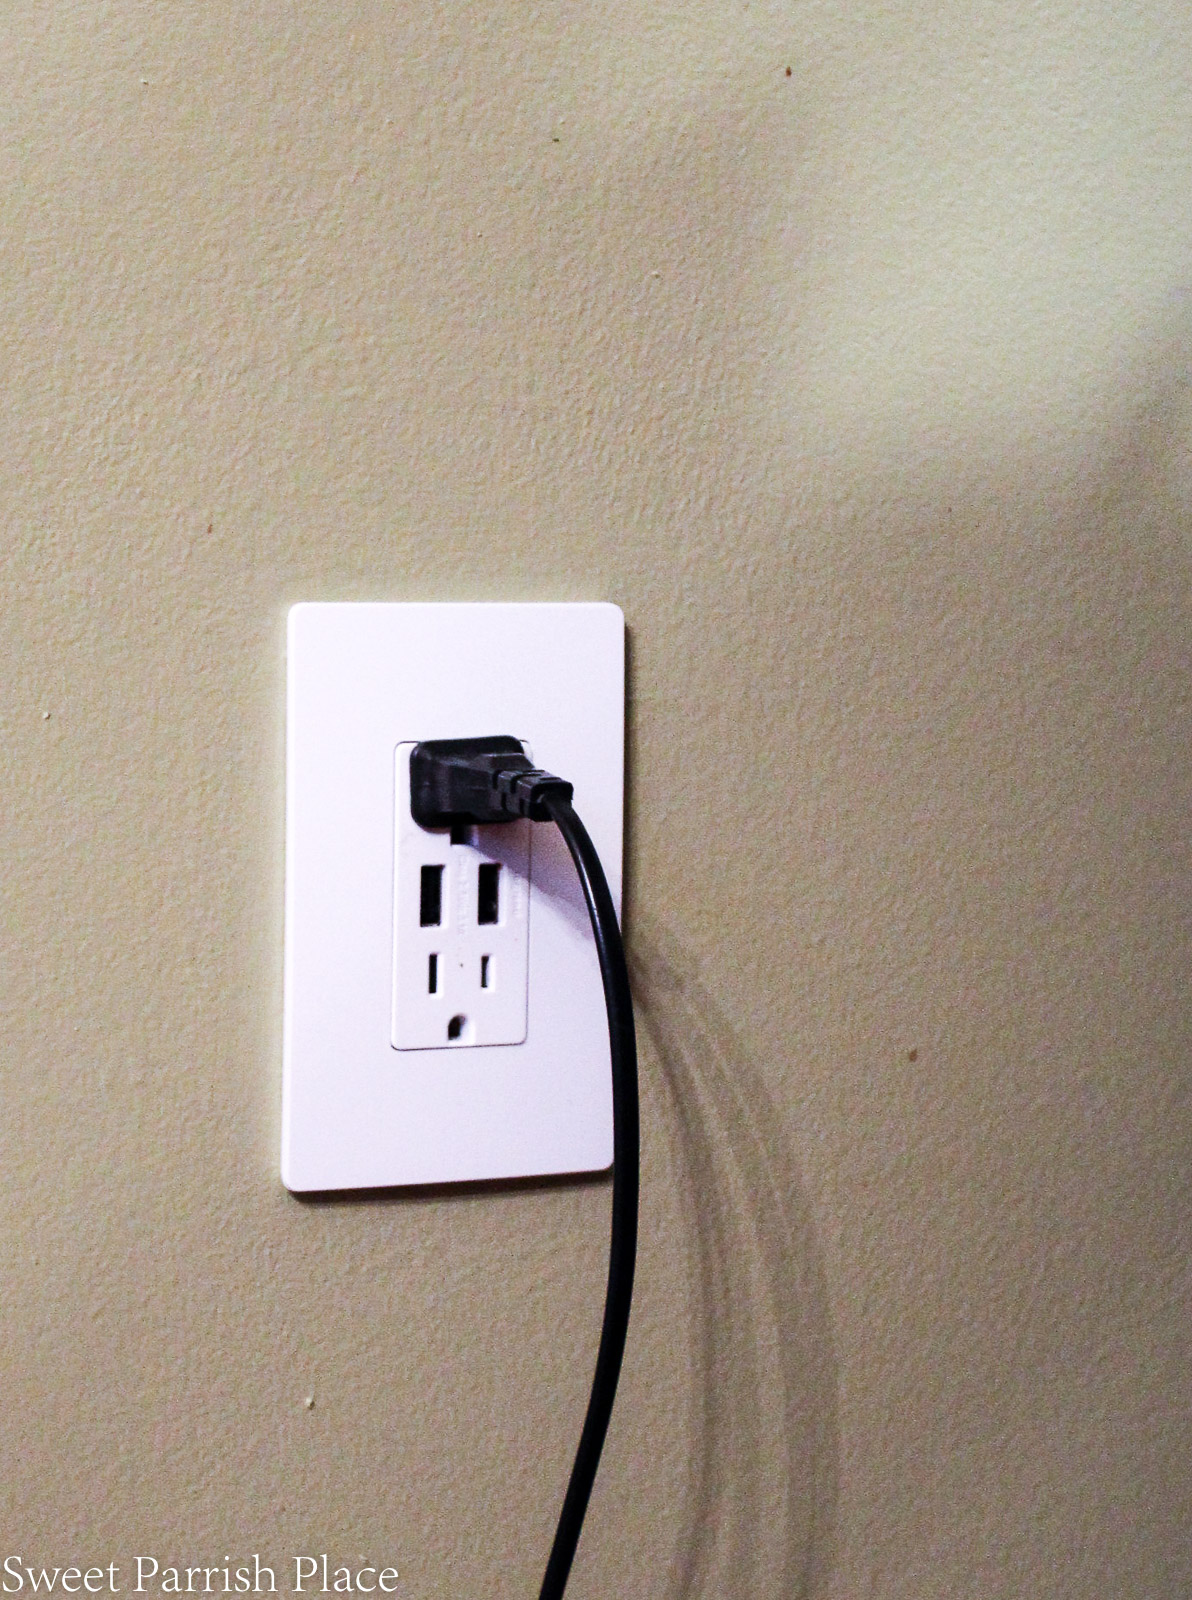 Legrand radiant collection electric outlet and wall plate